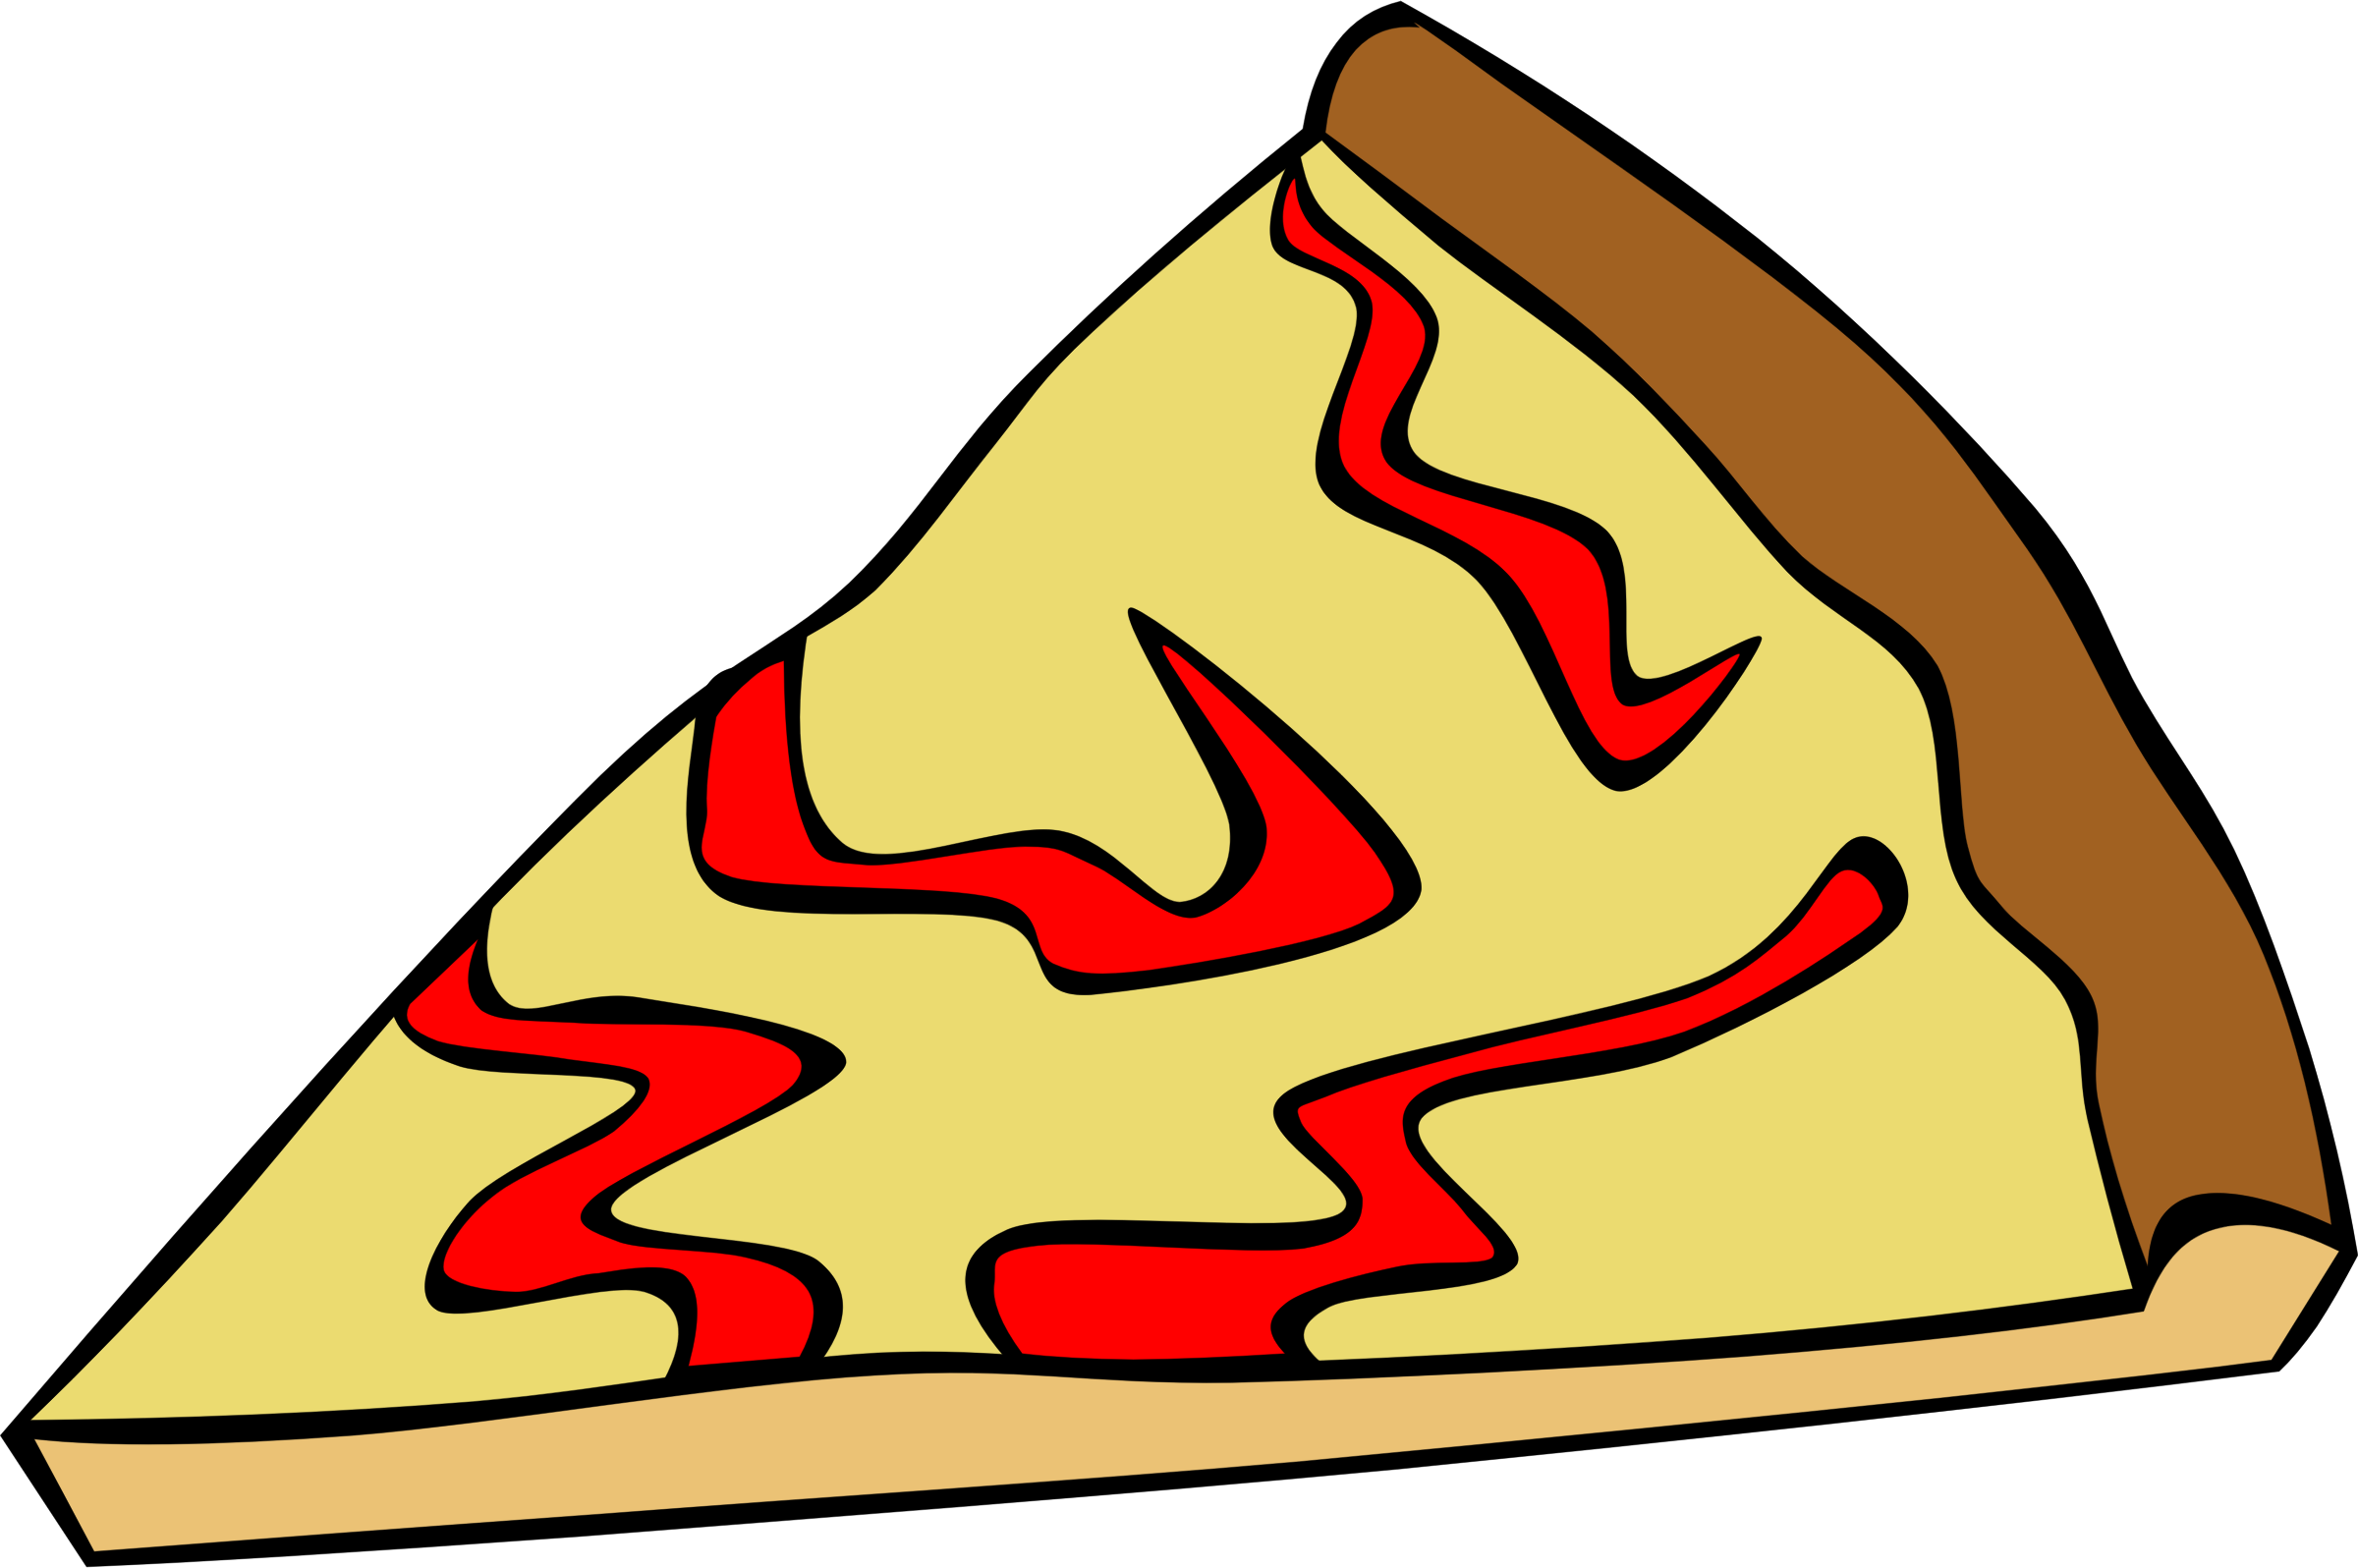 Pizza clipart fast food Food – fast snack Snack